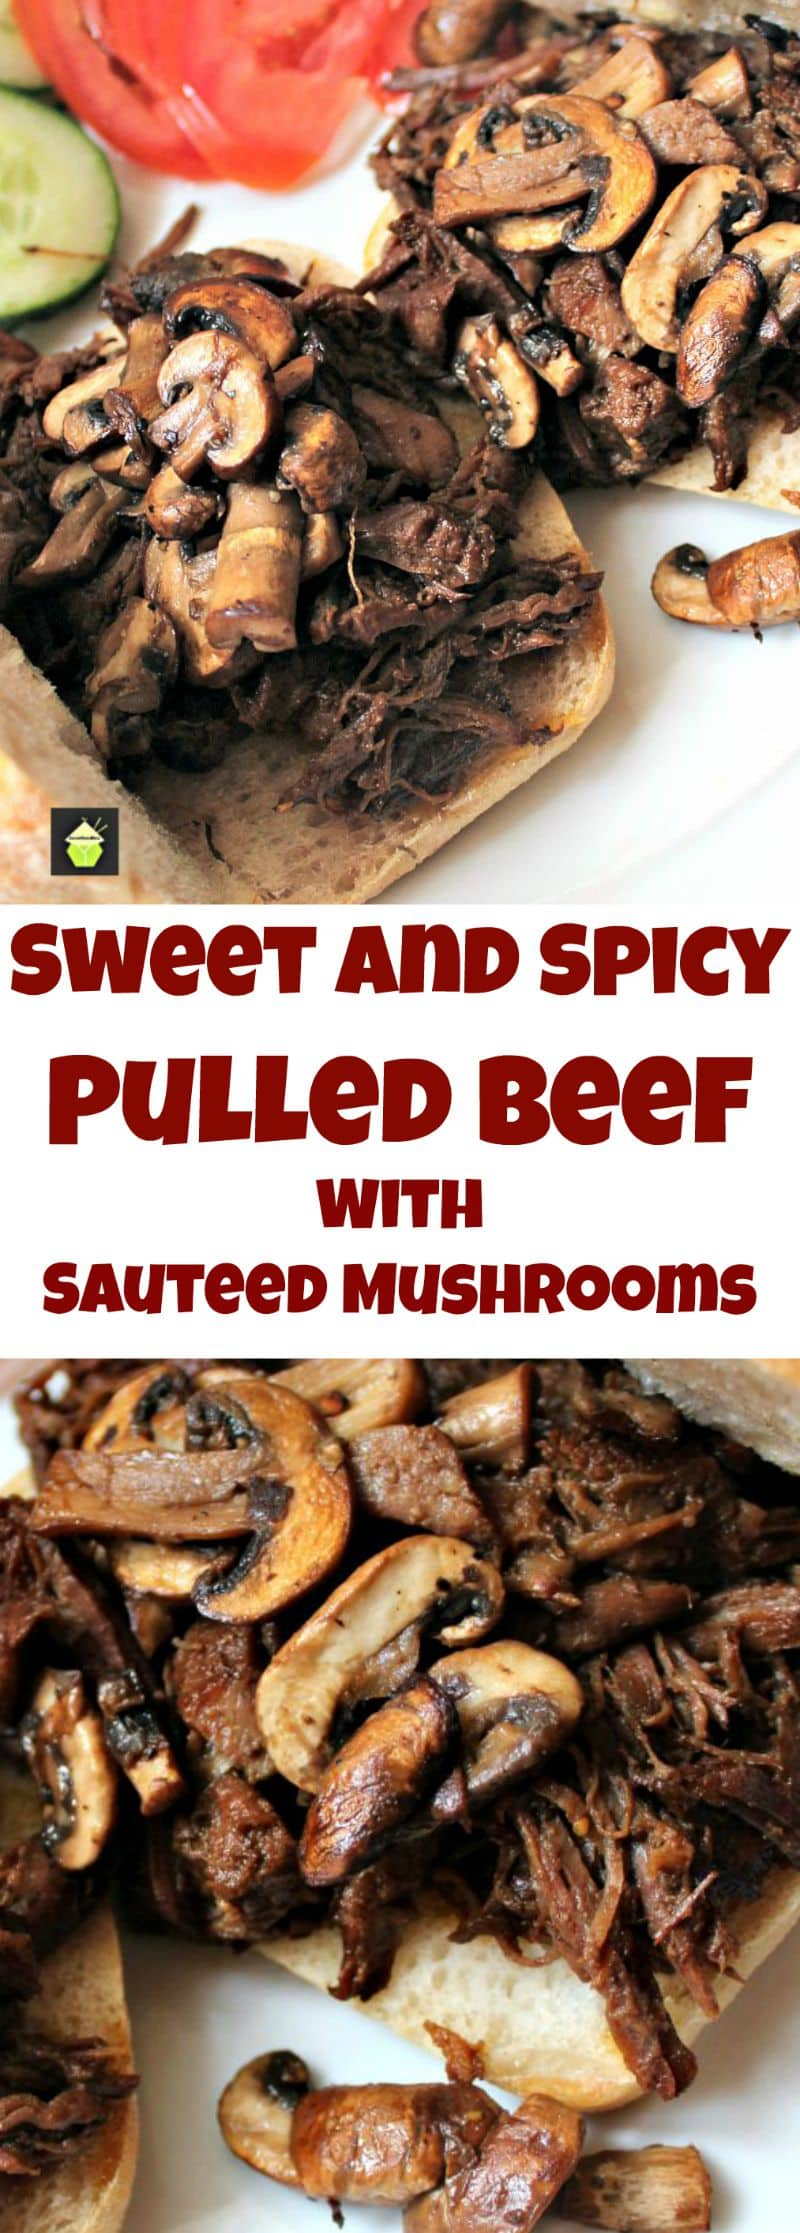 Sweet and Spicy Pulled Beef. Slow cooked tender beef in a delicious sauce, simply served on a warm ciabatta roll with sauteed mushrooms, makes for a perfect meal!